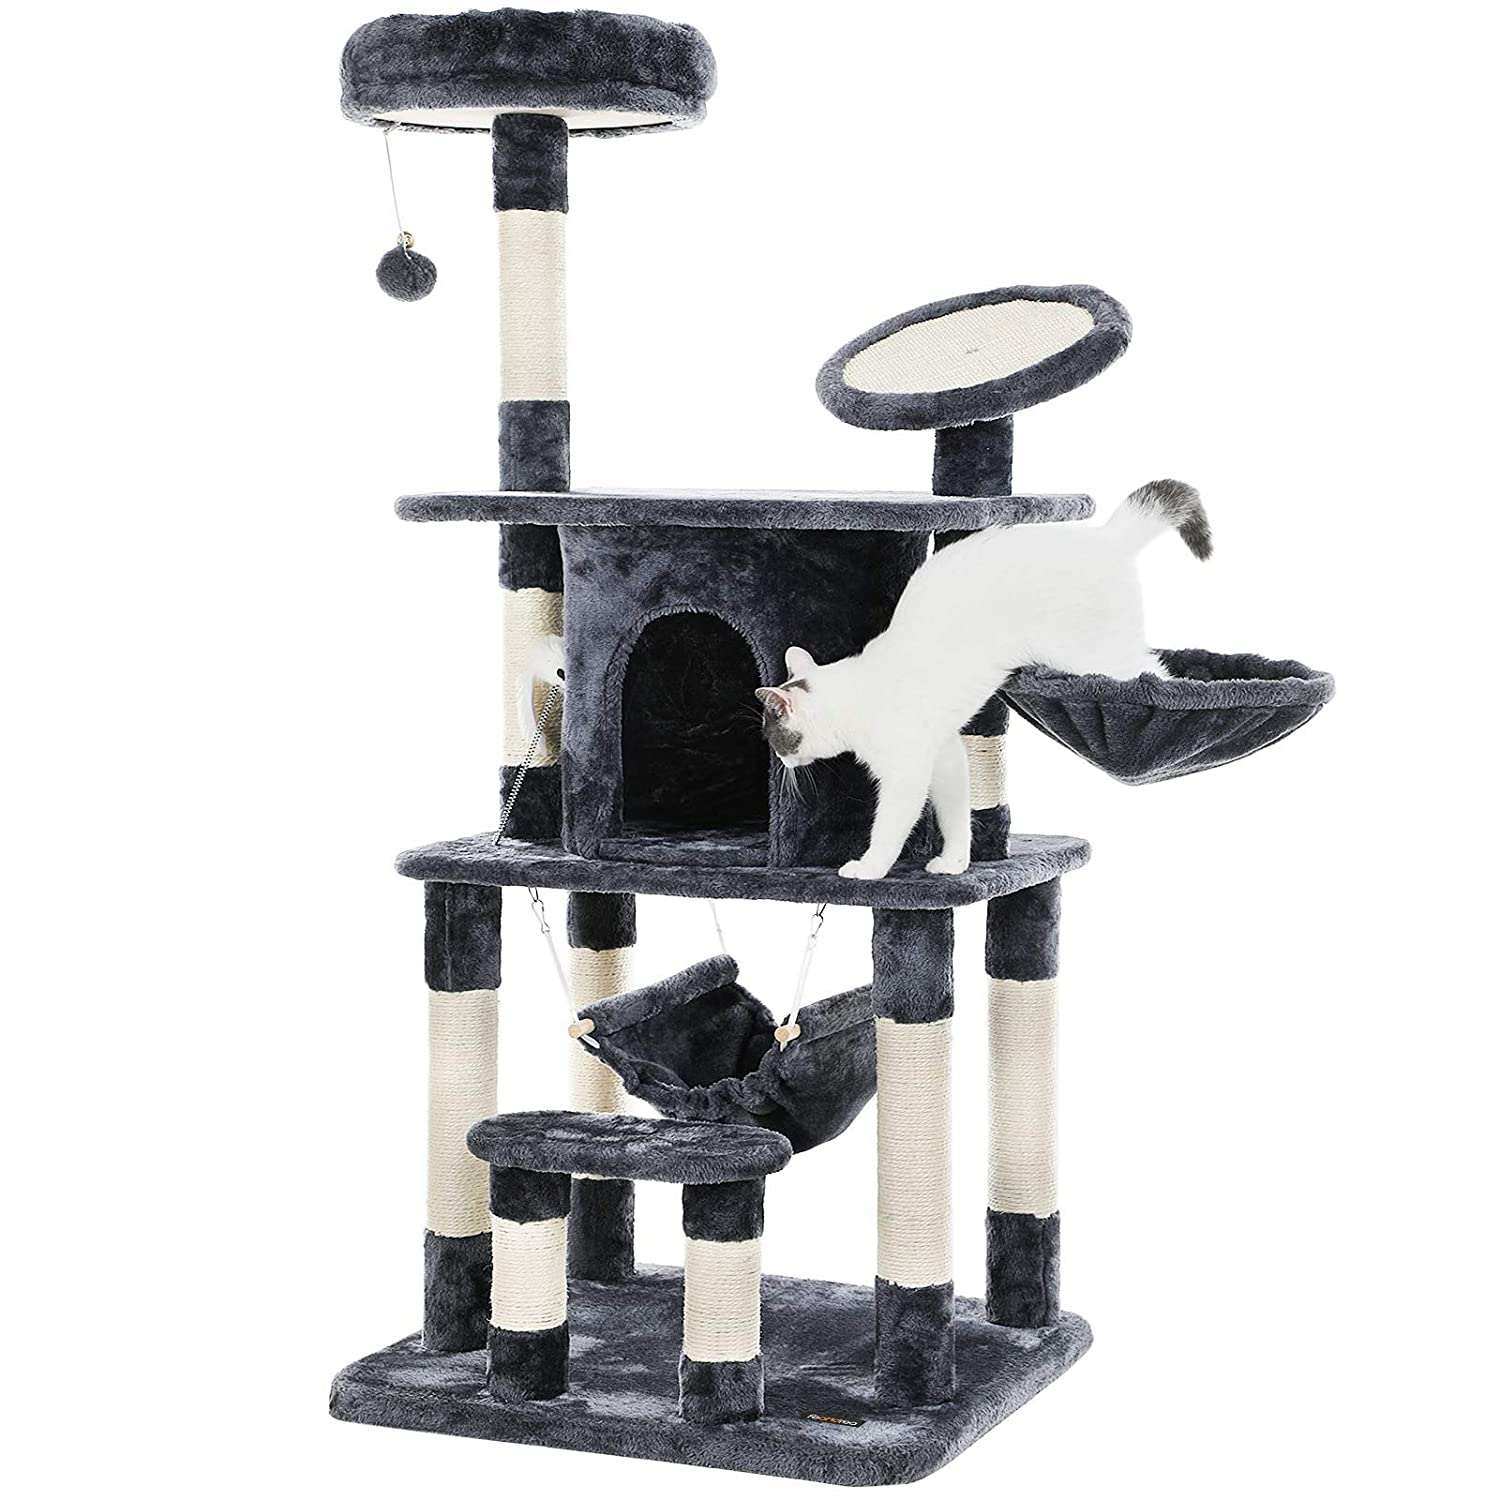 565102e6adcd FEANDREA Cat Tree with Scratching Board, Climbing Tree with Sisal Poles,  Hammock and Cave, Padded Platform, Climbing Post for Cats, 57.1